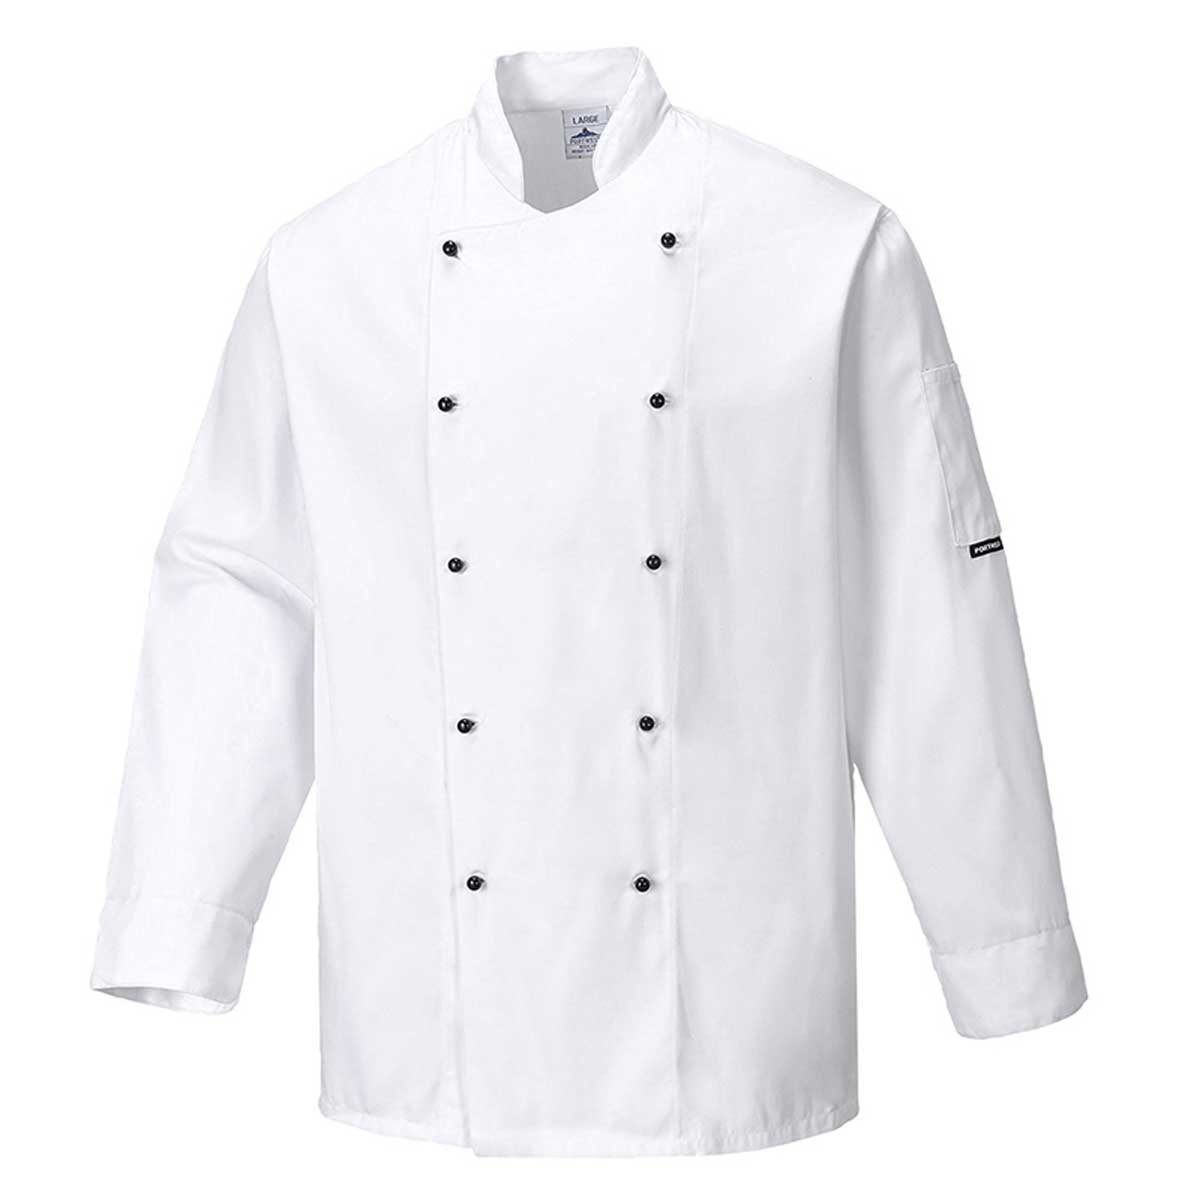 190g Somerset Chefs Jacket - WCJA834-white